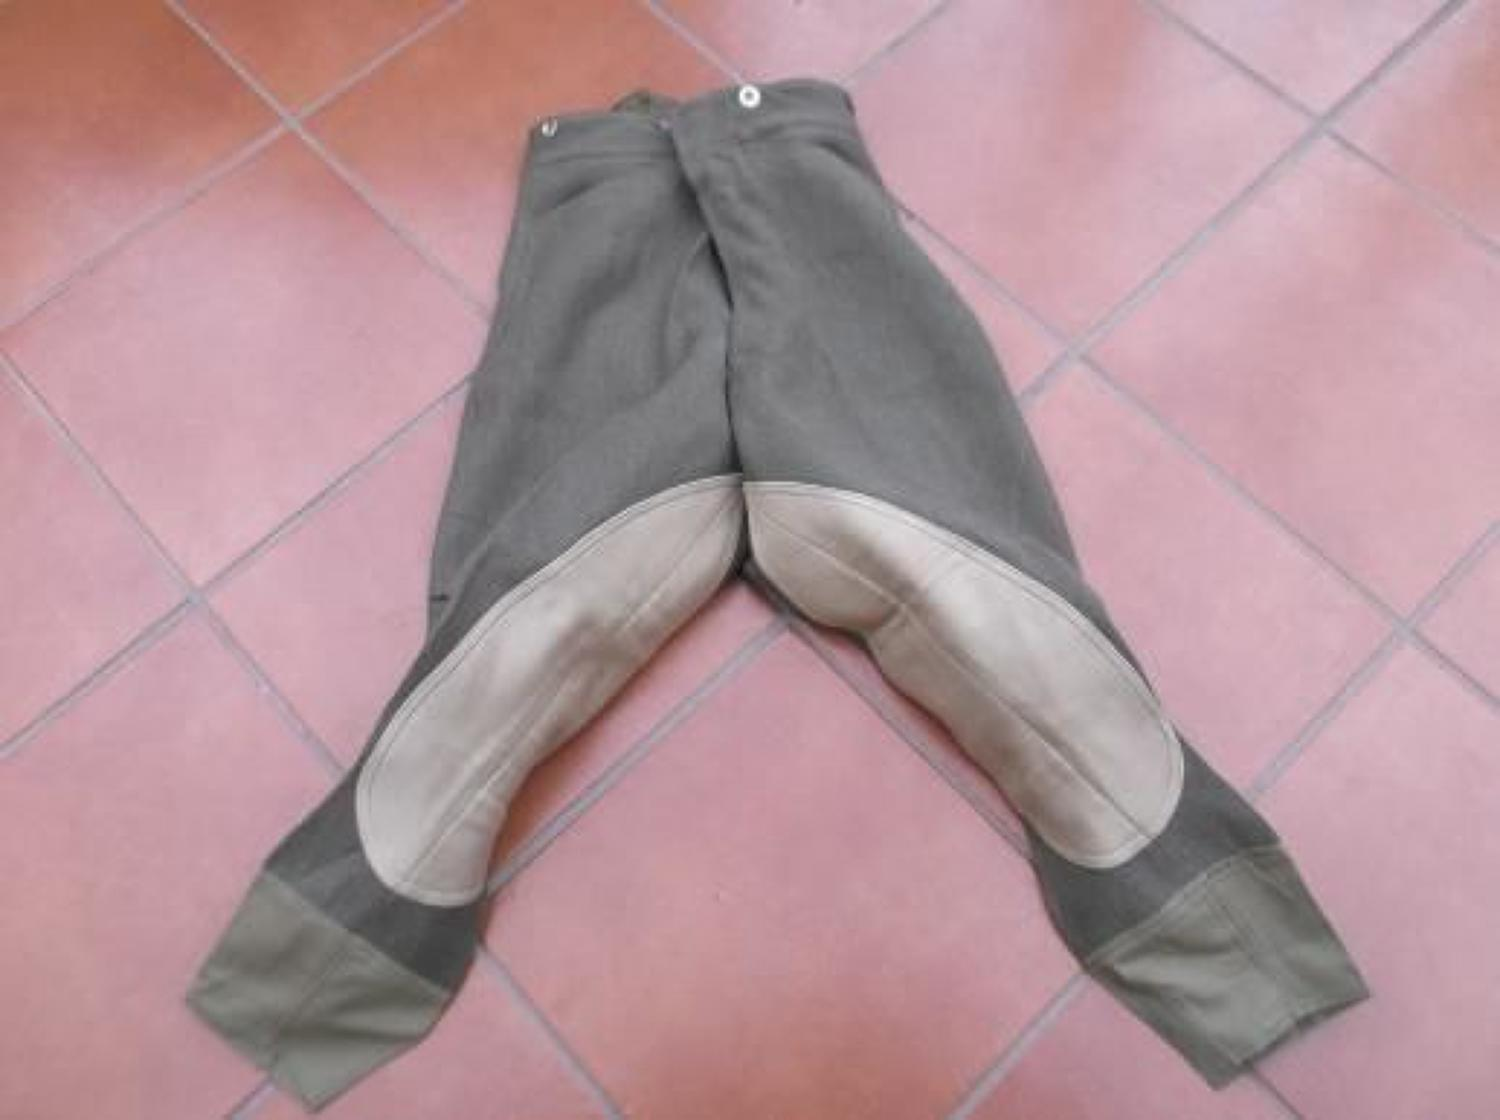 Inter War Bedford Cord Other Ranks Pantaloons / Breeches